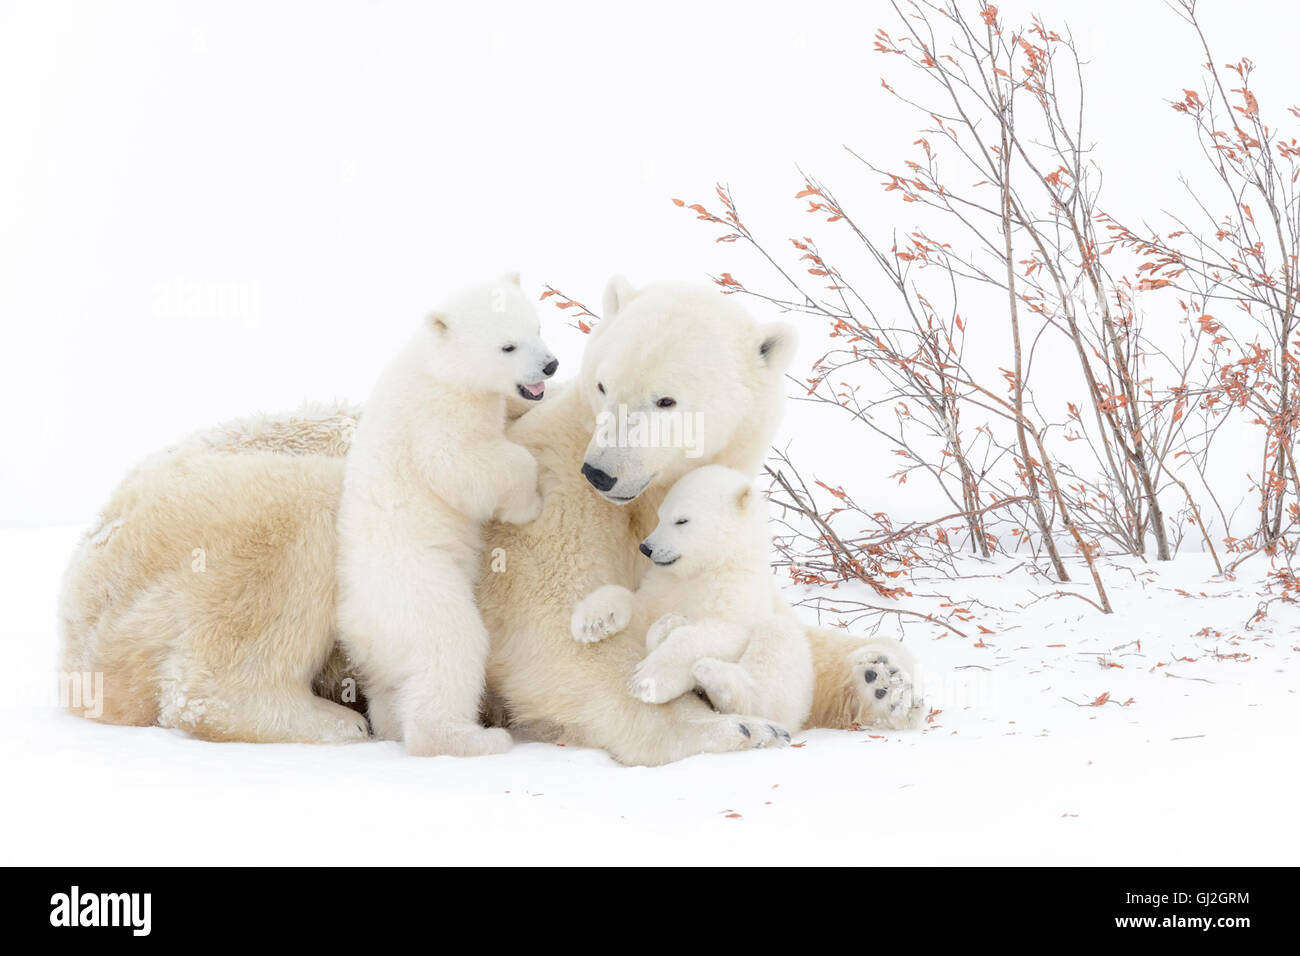 Polar bear mother (Ursus maritimus) lying down with two playing cubs, Wapusk National Park, Manitoba, Canada - Stock Image